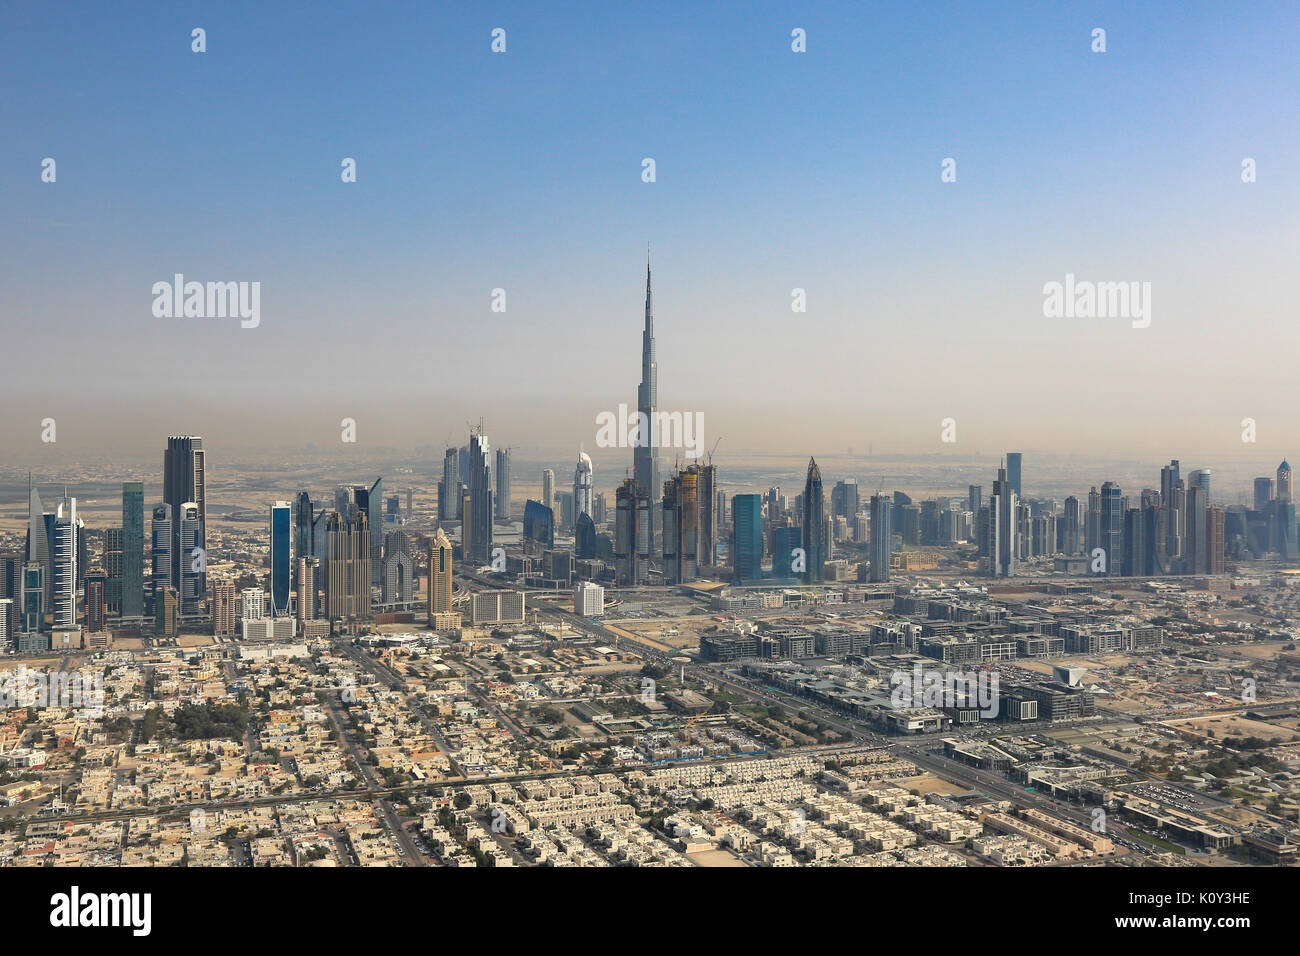 Dubai Burj Khalifa skyscraper aerial view photography UAE Stock Photo